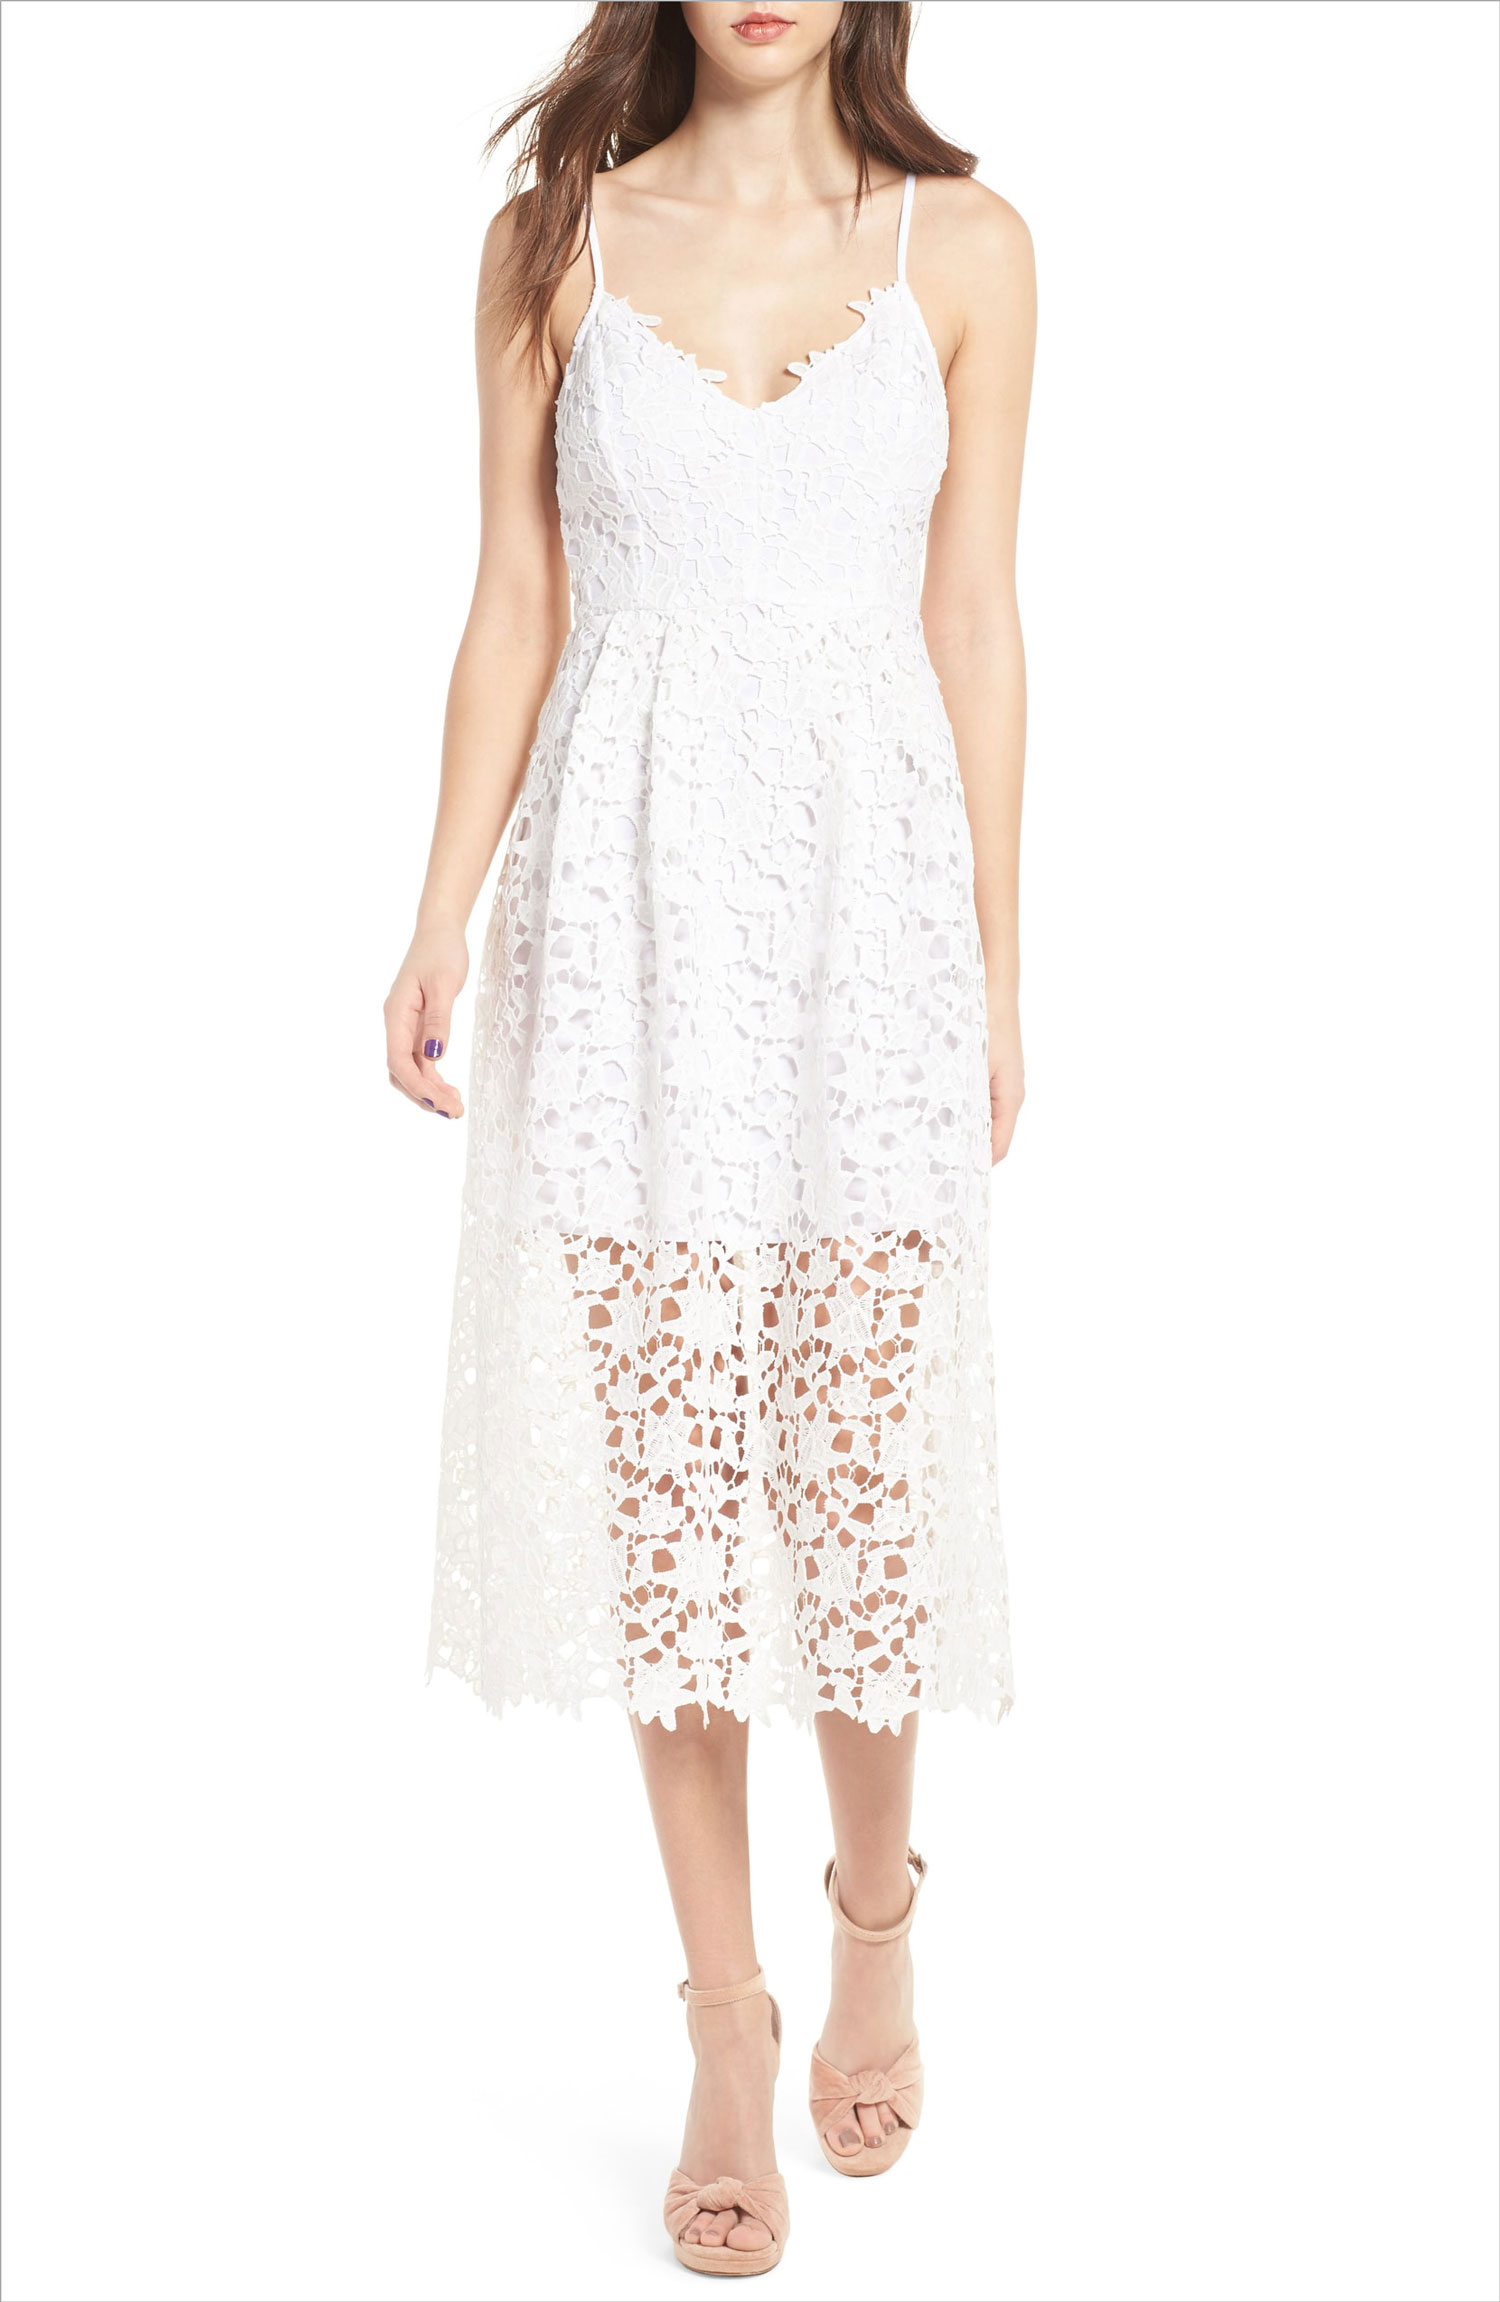 Lace white dress midi astr the label nordstrom bride bridal shower rehearsal dinner dress ideas